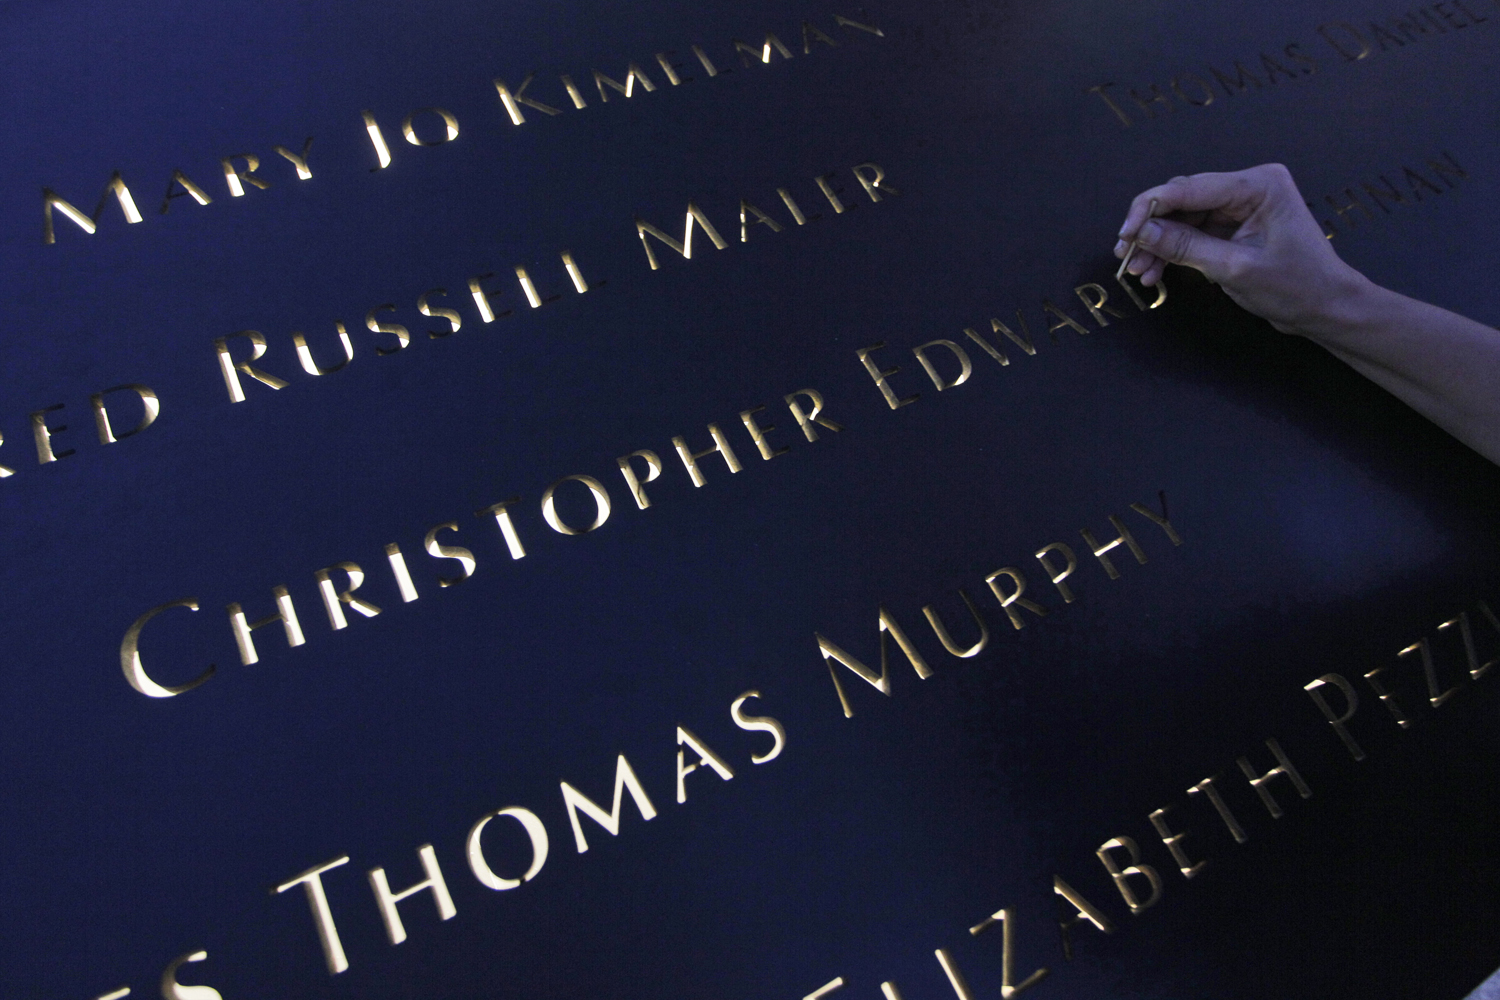 September 11, 2011. Christine Corday puts final touches on the name panels on the north pool at the National September 11 Memorial before a ceremony marking the 10th anniversary of the attacks at the World Trade Center site in New York.